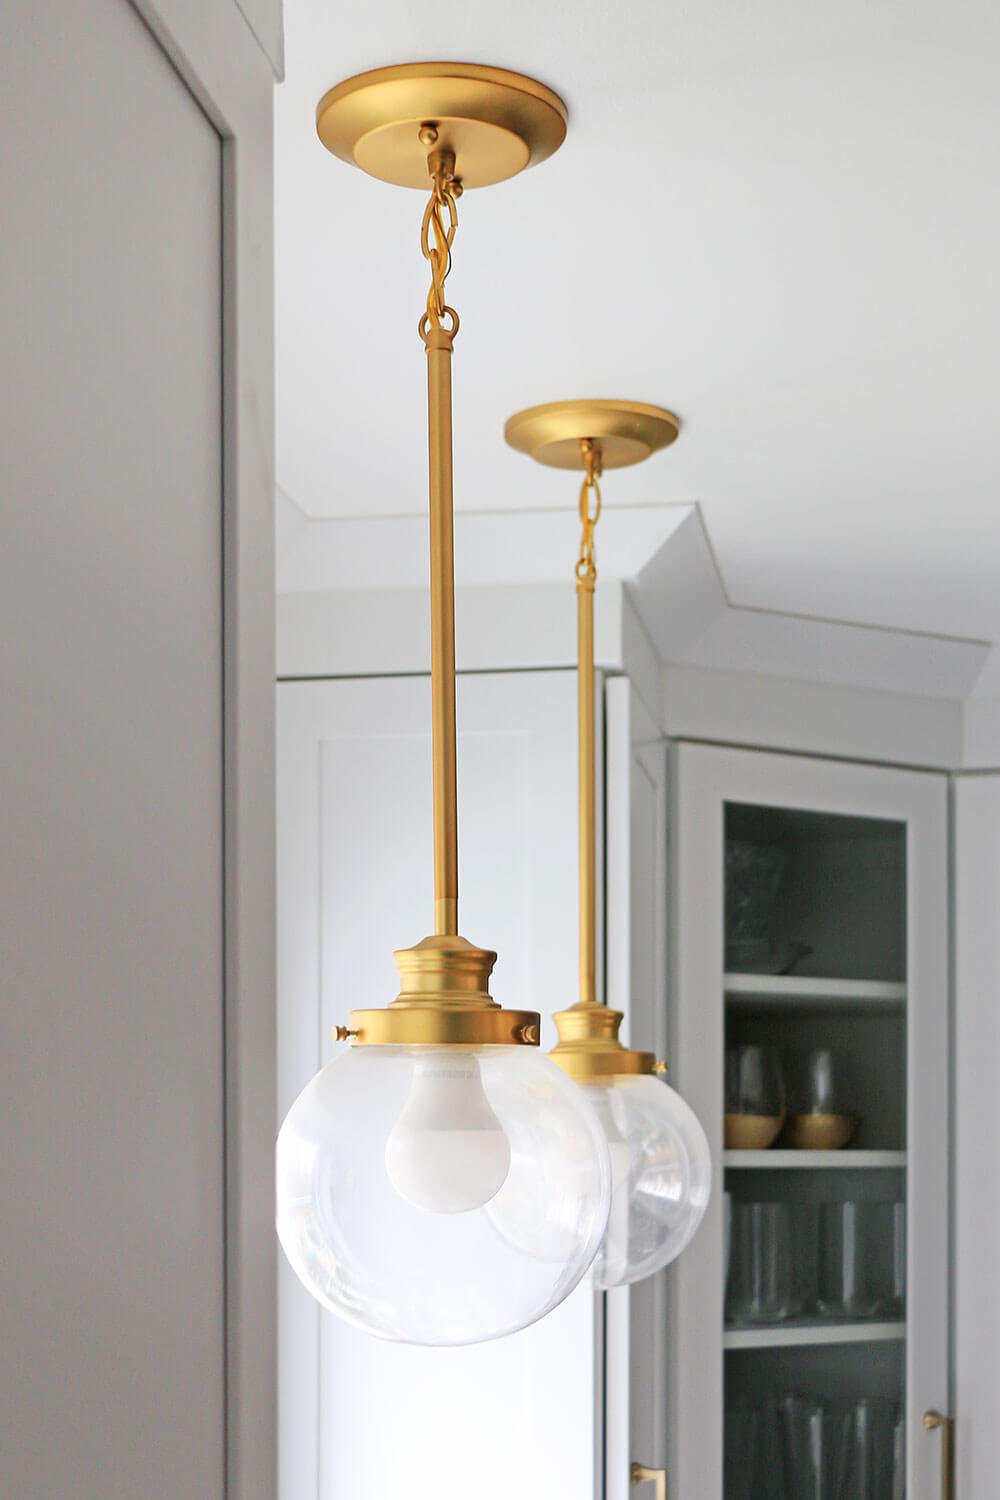 Hanging-Gold-Sconce